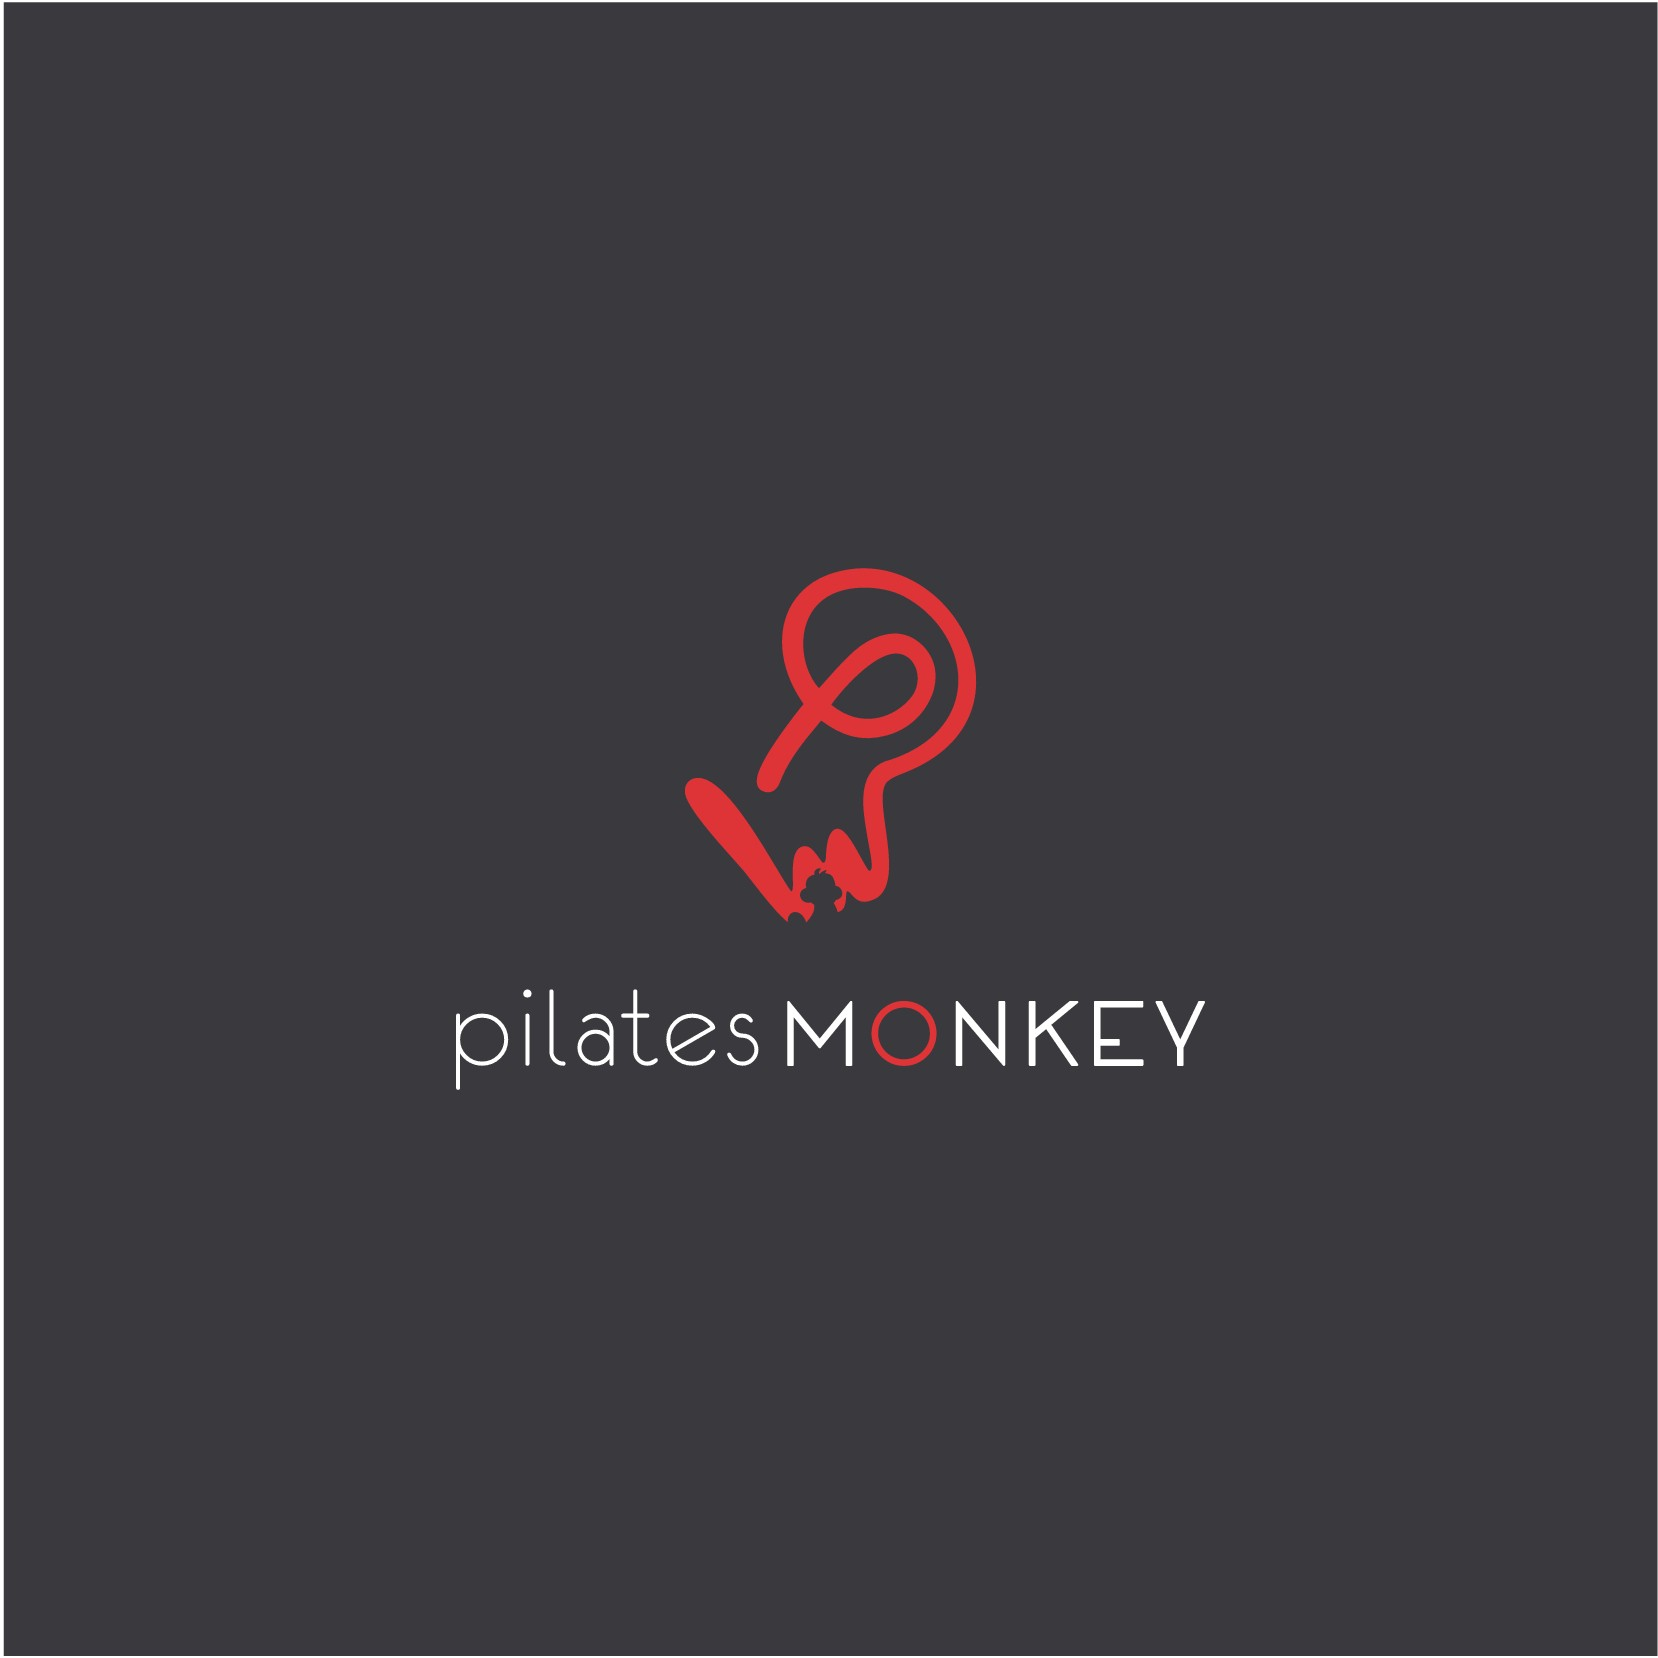 create a clever, trendy, sophisticated, urban brand identity for PILATES MONKEY